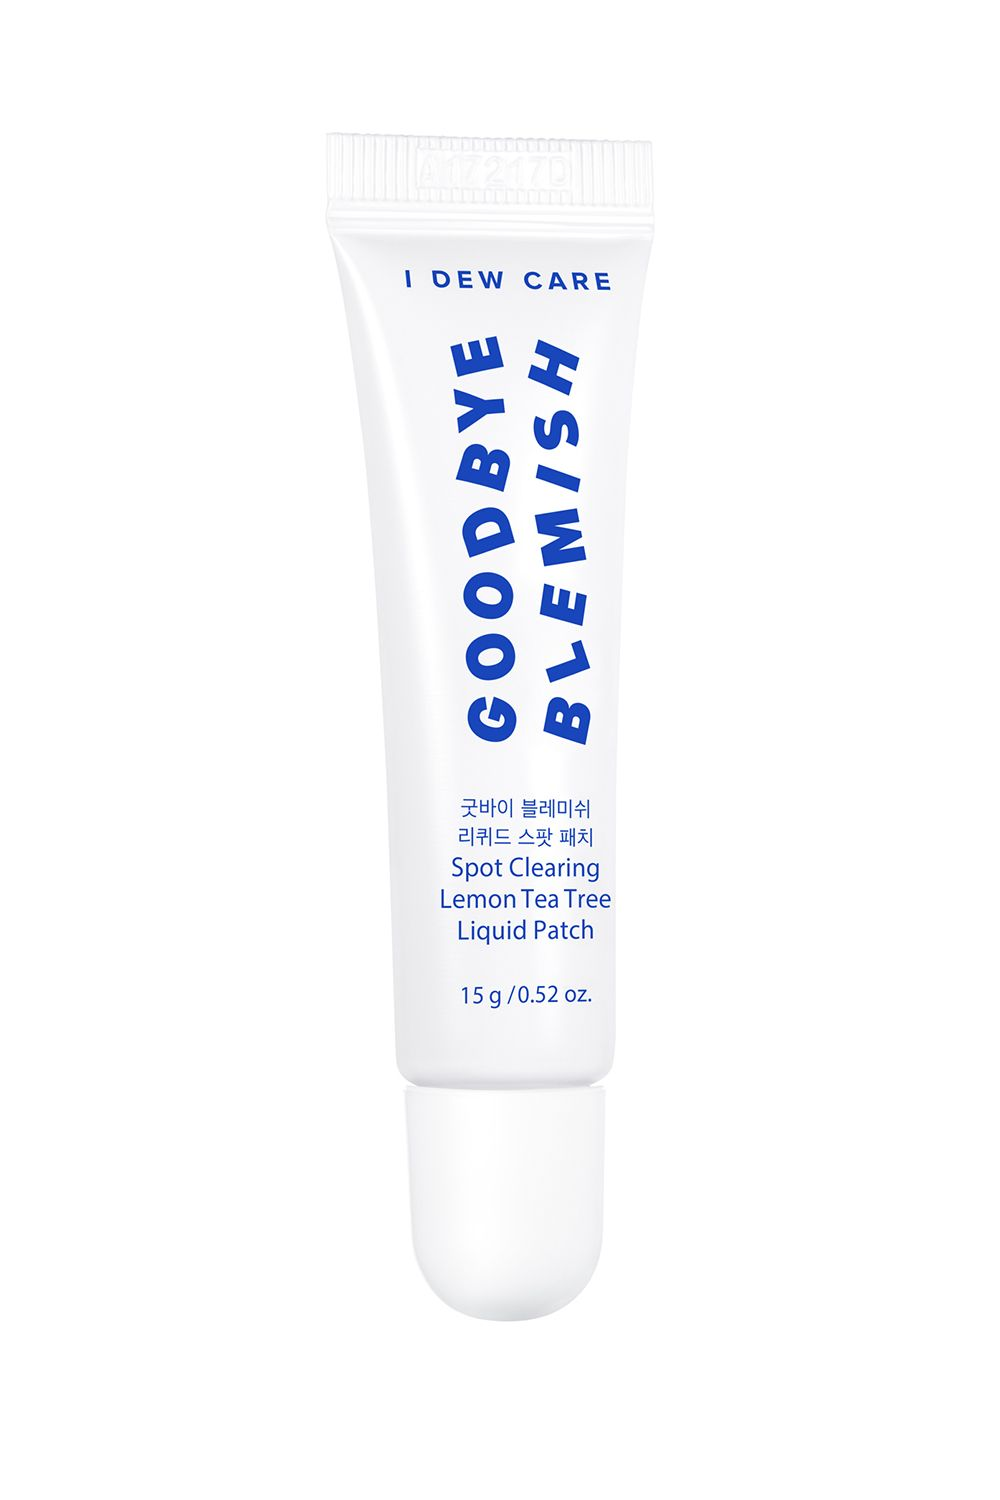 """<p>This tea tree-loaded gel acts as clear bandage for your zit—swipe on a thin layer, let it dry, and then apply your makeup or moisturizer on top, without worrying about it slipping or sliding off.</p><p><i data-redactor-tag=""""i"""">Memebox I Dew Care Blemish Spot Patch, $15</i></p><p><strong data-redactor-tag=""""strong"""">BUY IT: <a href=""""http://www.ulta.com/i-dew-care-blemish-spot-patch?productId=xlsImpprod16361309"""">ulta.com</a>.</strong></p>"""